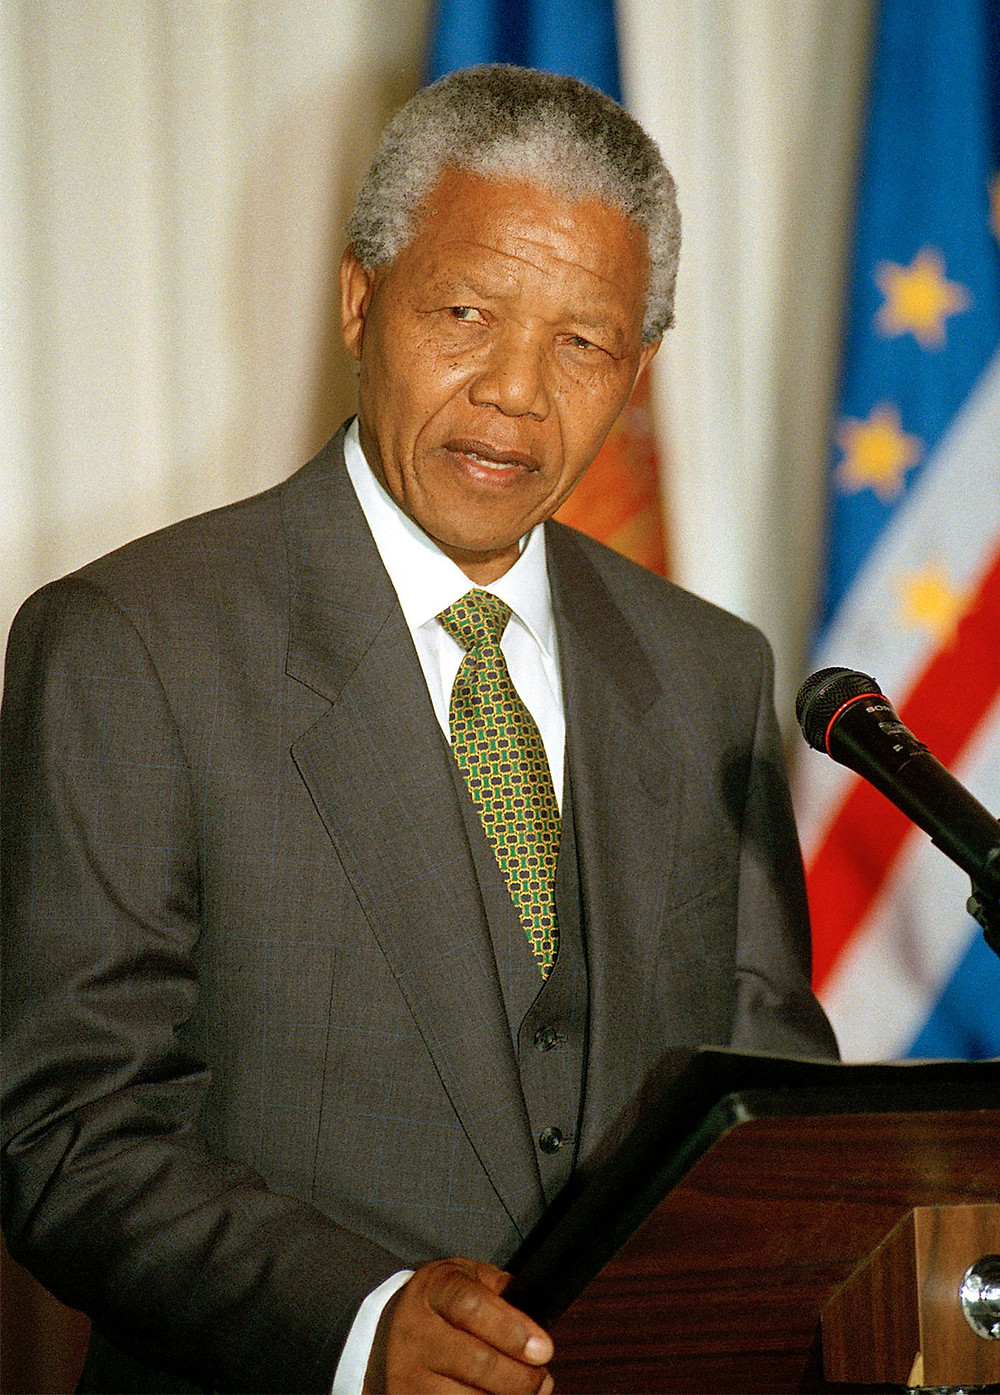 This is a portrait of Nelson Mandela, a Black man. He has salt and pepper hair, and he's wearing a gray suit, a white dress shirt, and a green tie. He's standing behind a podium, and there are a couple of large flags behind him.